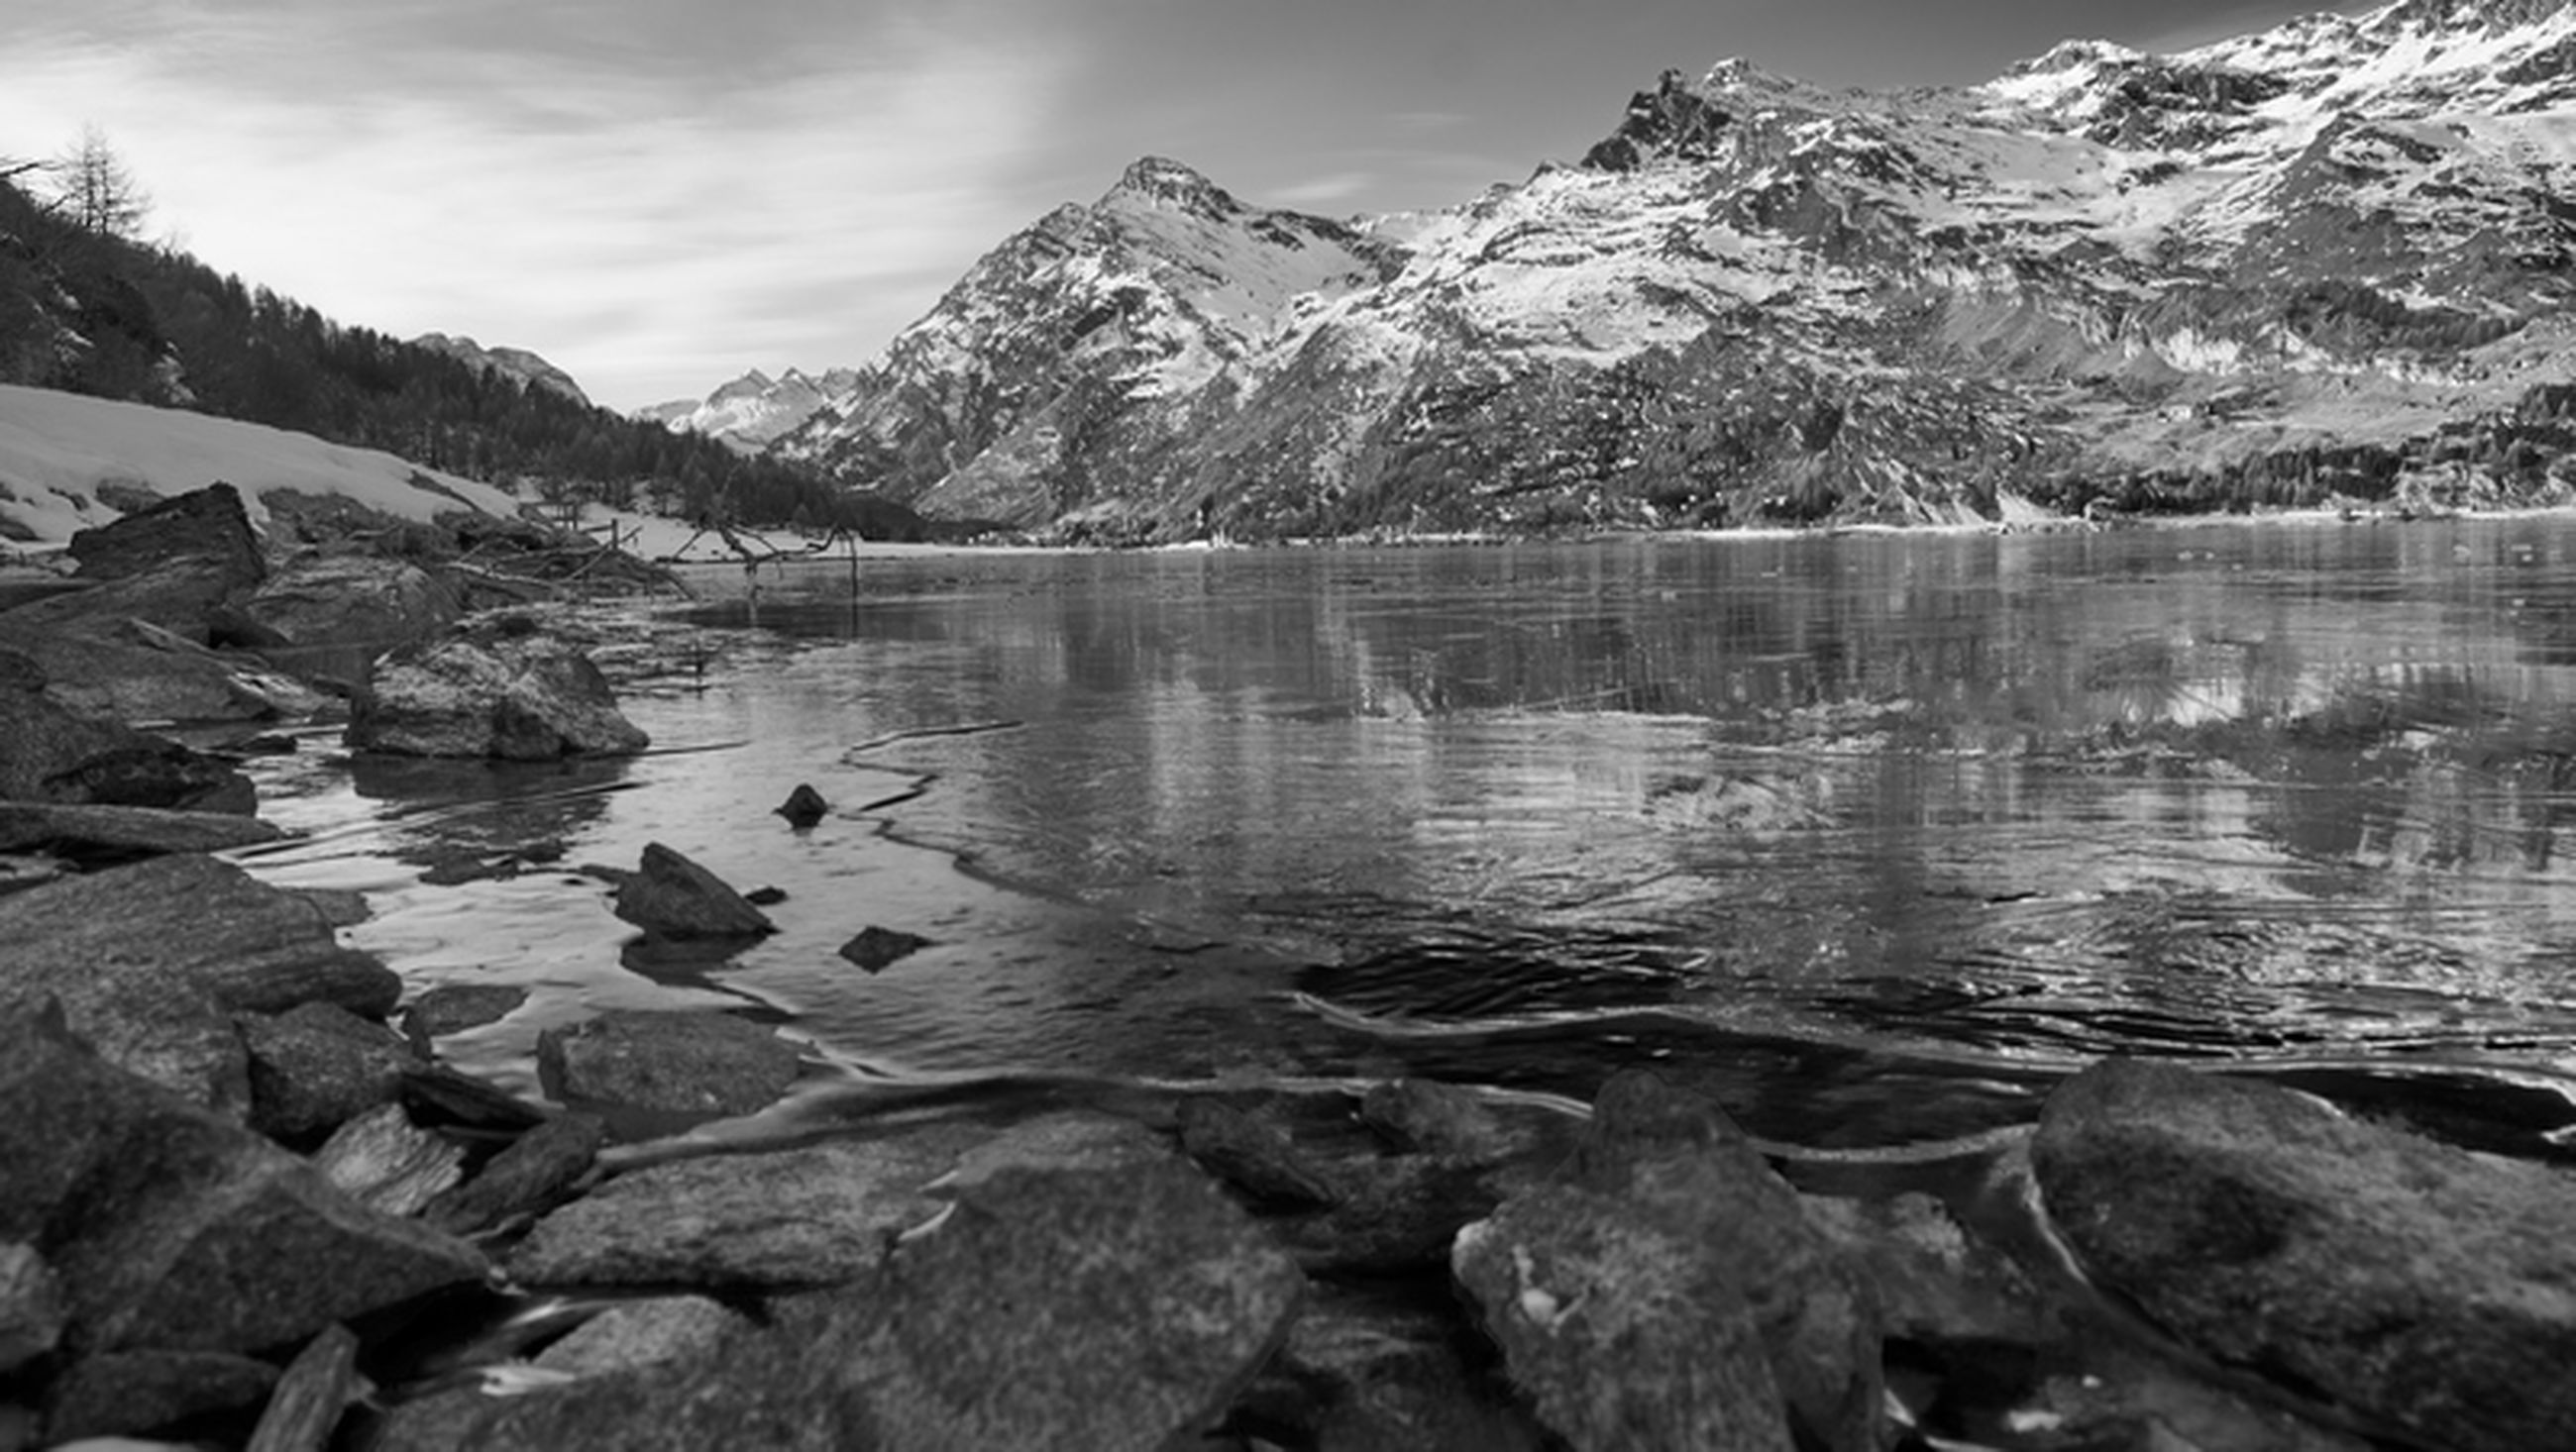 mountain, lake, nature, water, scenics, beauty in nature, outdoors, landscape, mountain range, no people, snow, sky, day